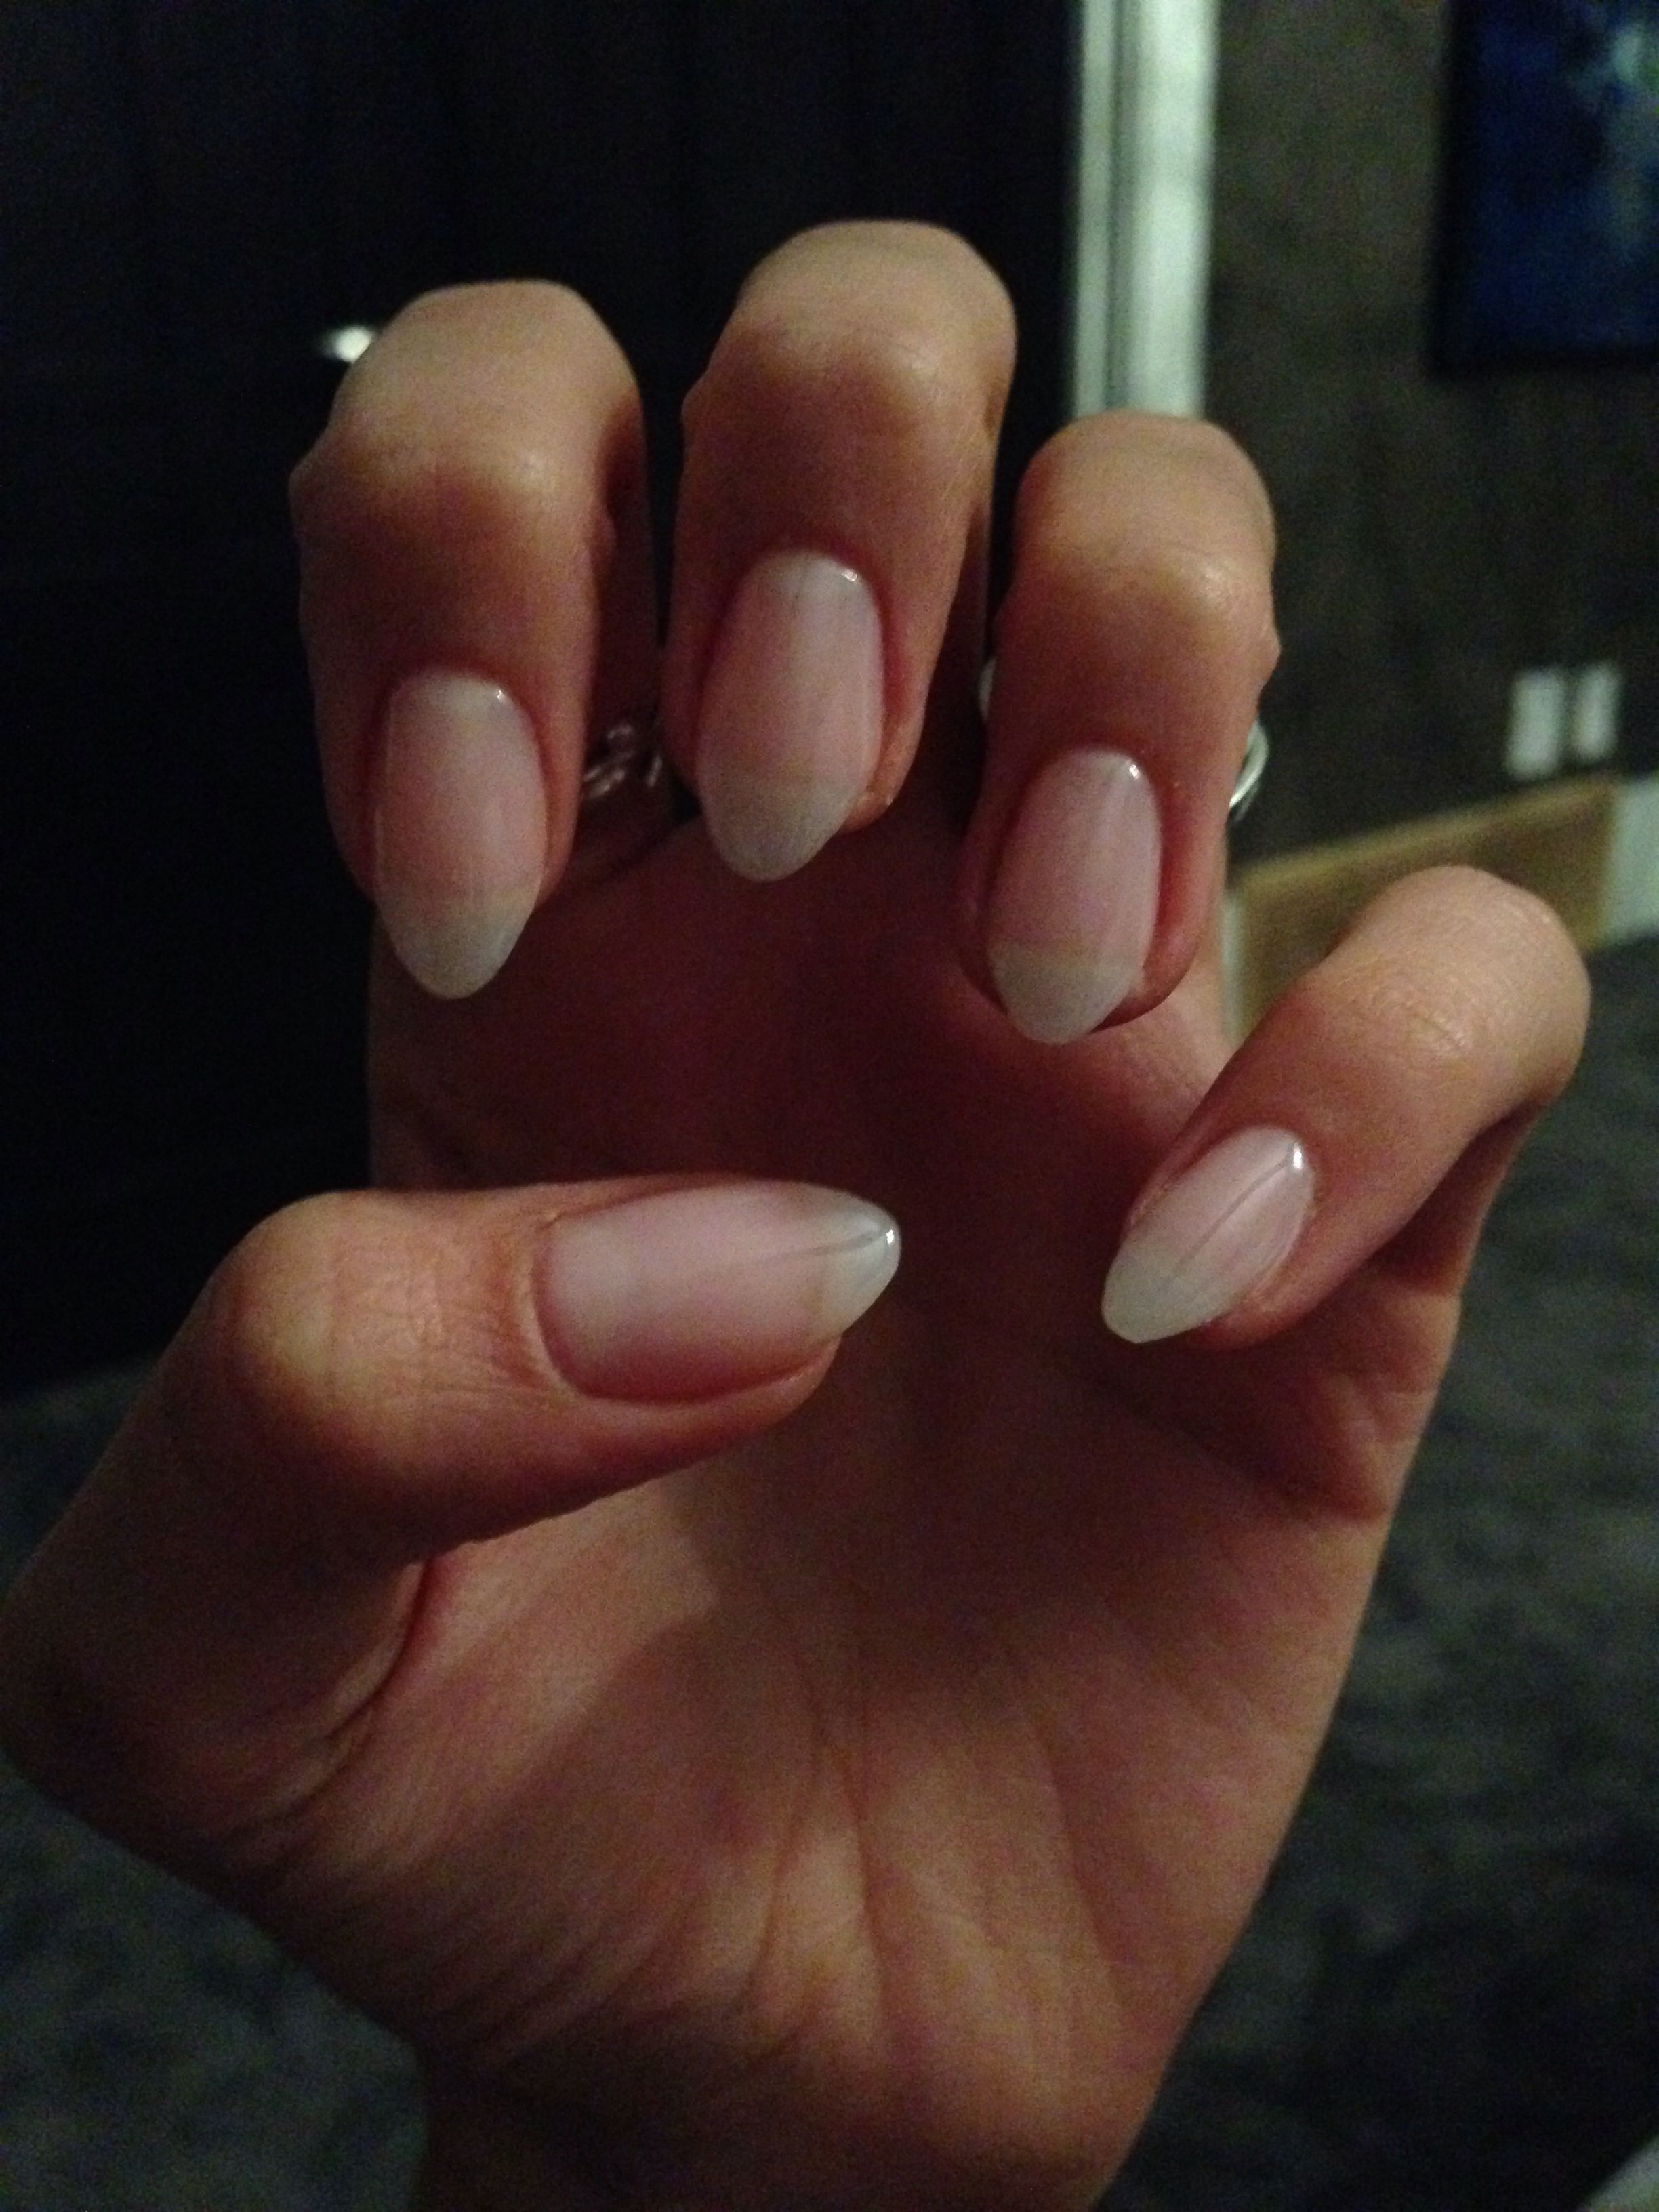 Pin By Amy Carson On Nails Clear Gel Nails Natural Gel Nails Gel Nails French